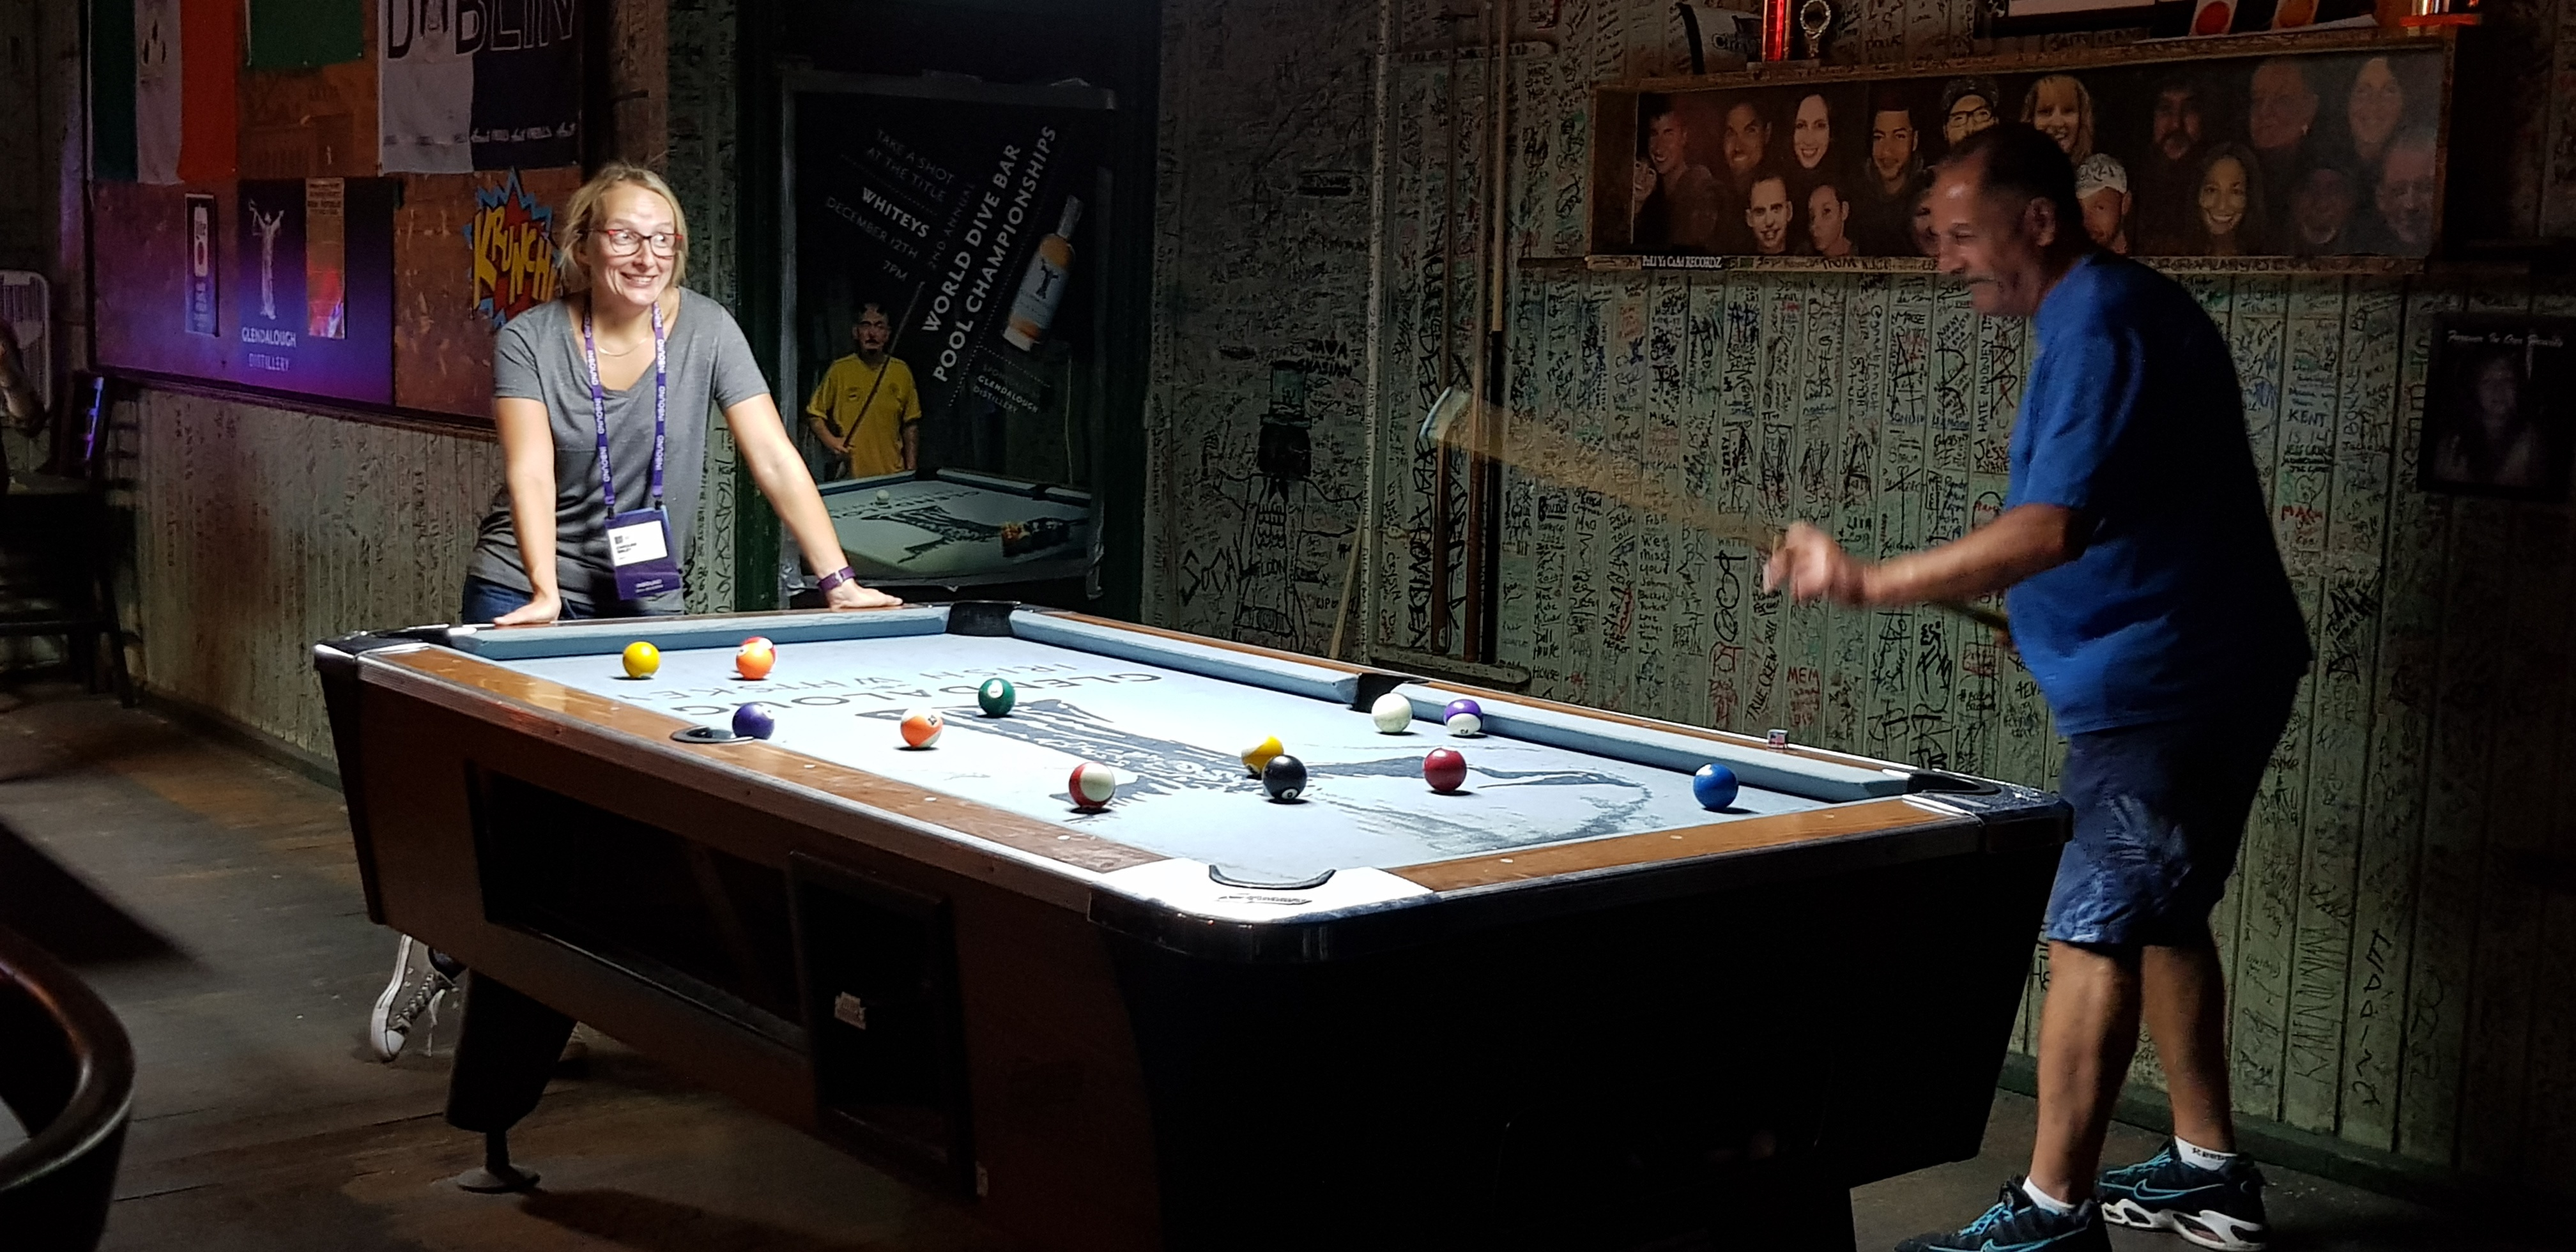 caz woman playing pool with jerrys mate man in croke park south boston street scene inbound 18